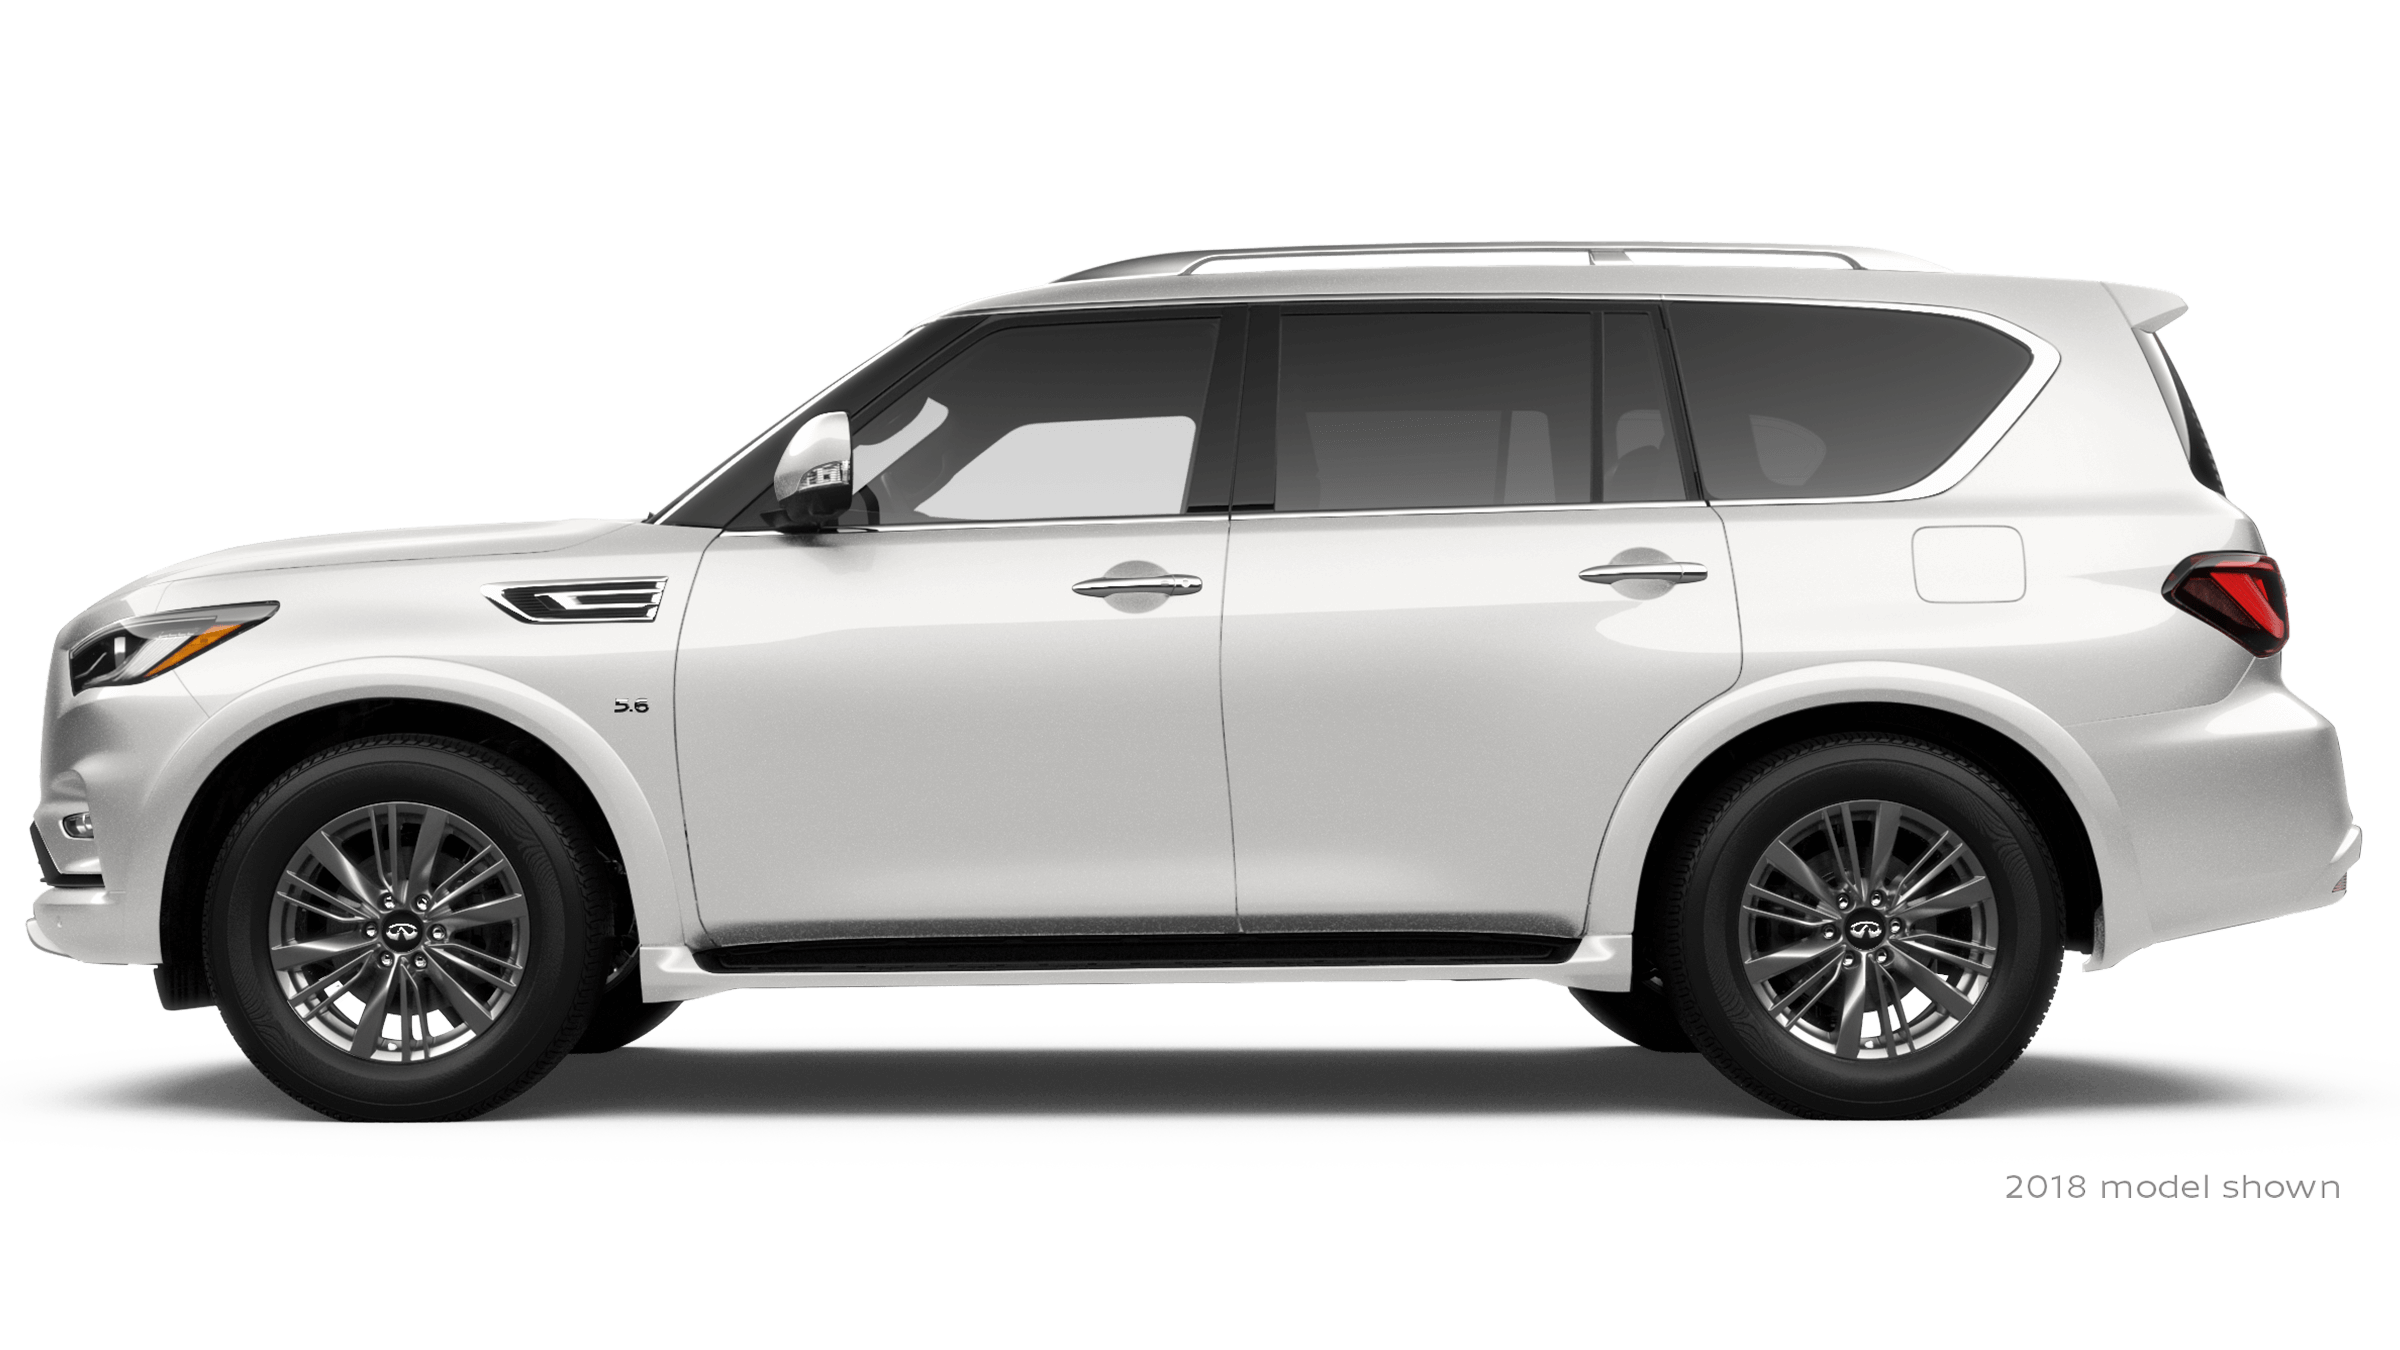 2019 INFINITI QX80 Vehicle Photo in Cerritos, CA 90703